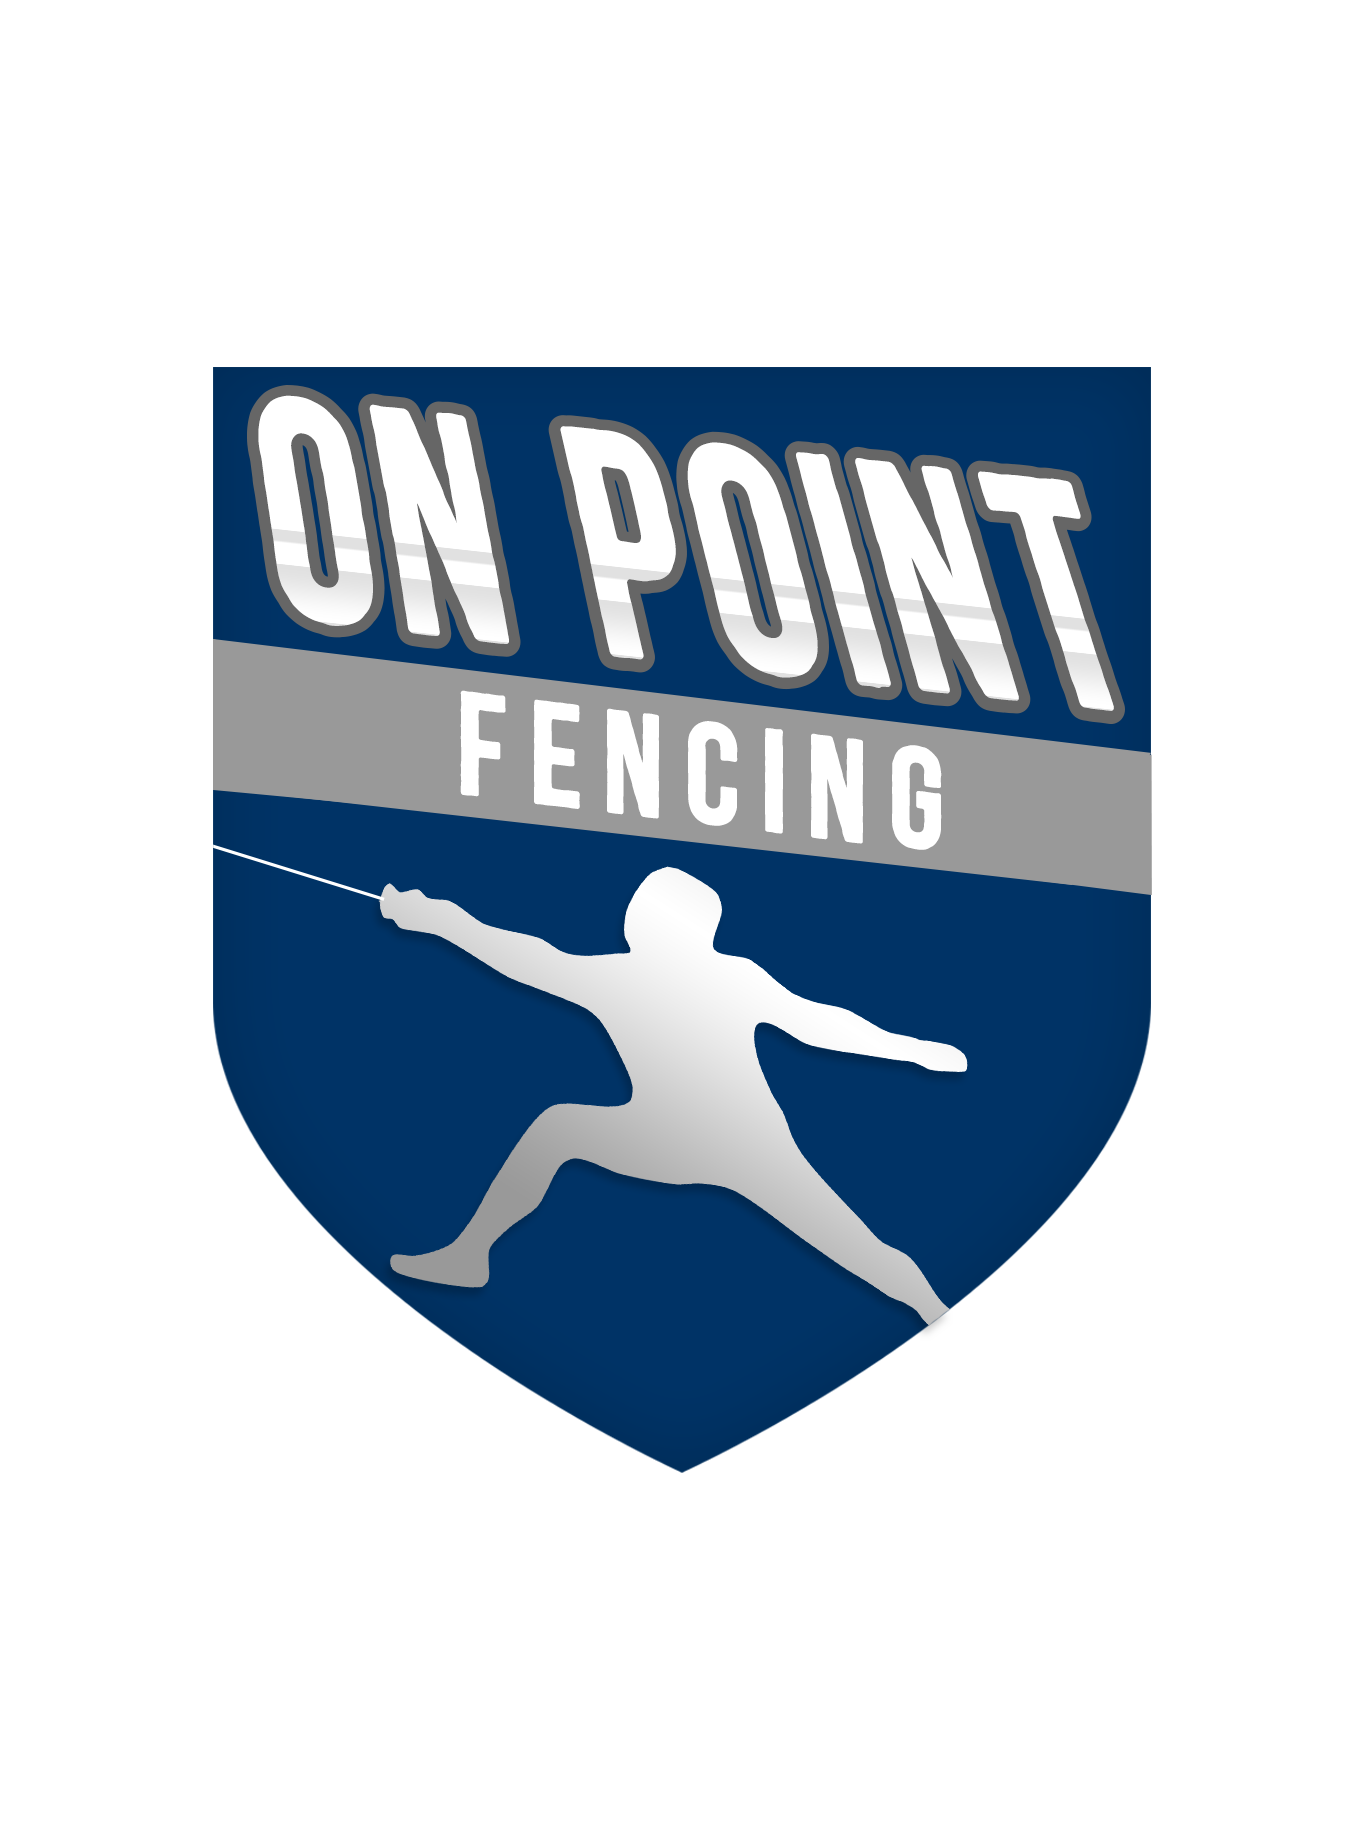 On Point Fencing Club